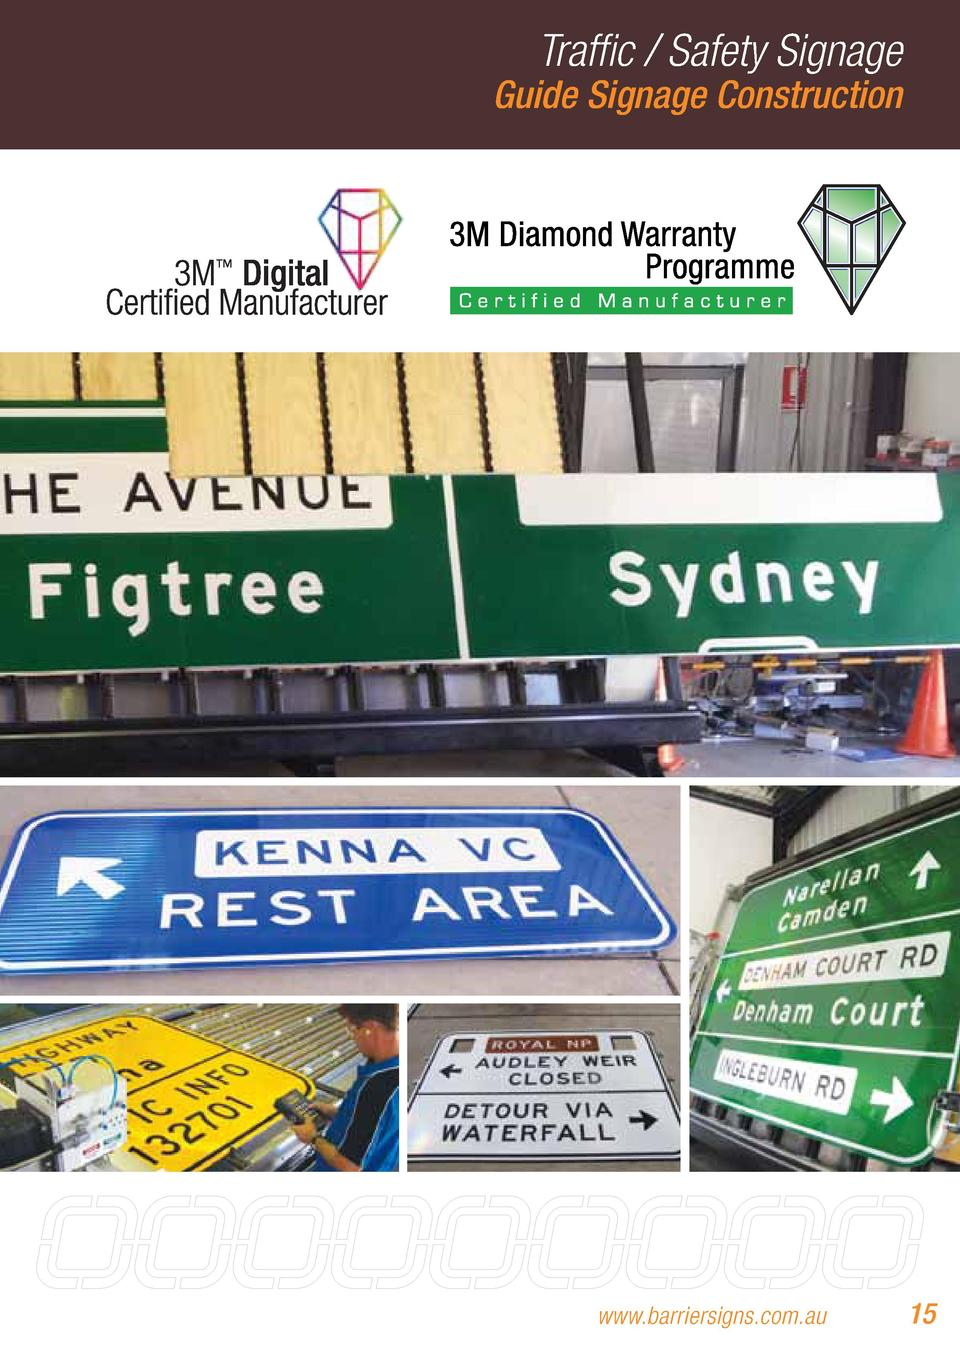 Traffic   Safety Signage  Guide Signage Construction  www.barriersigns.com.au  15